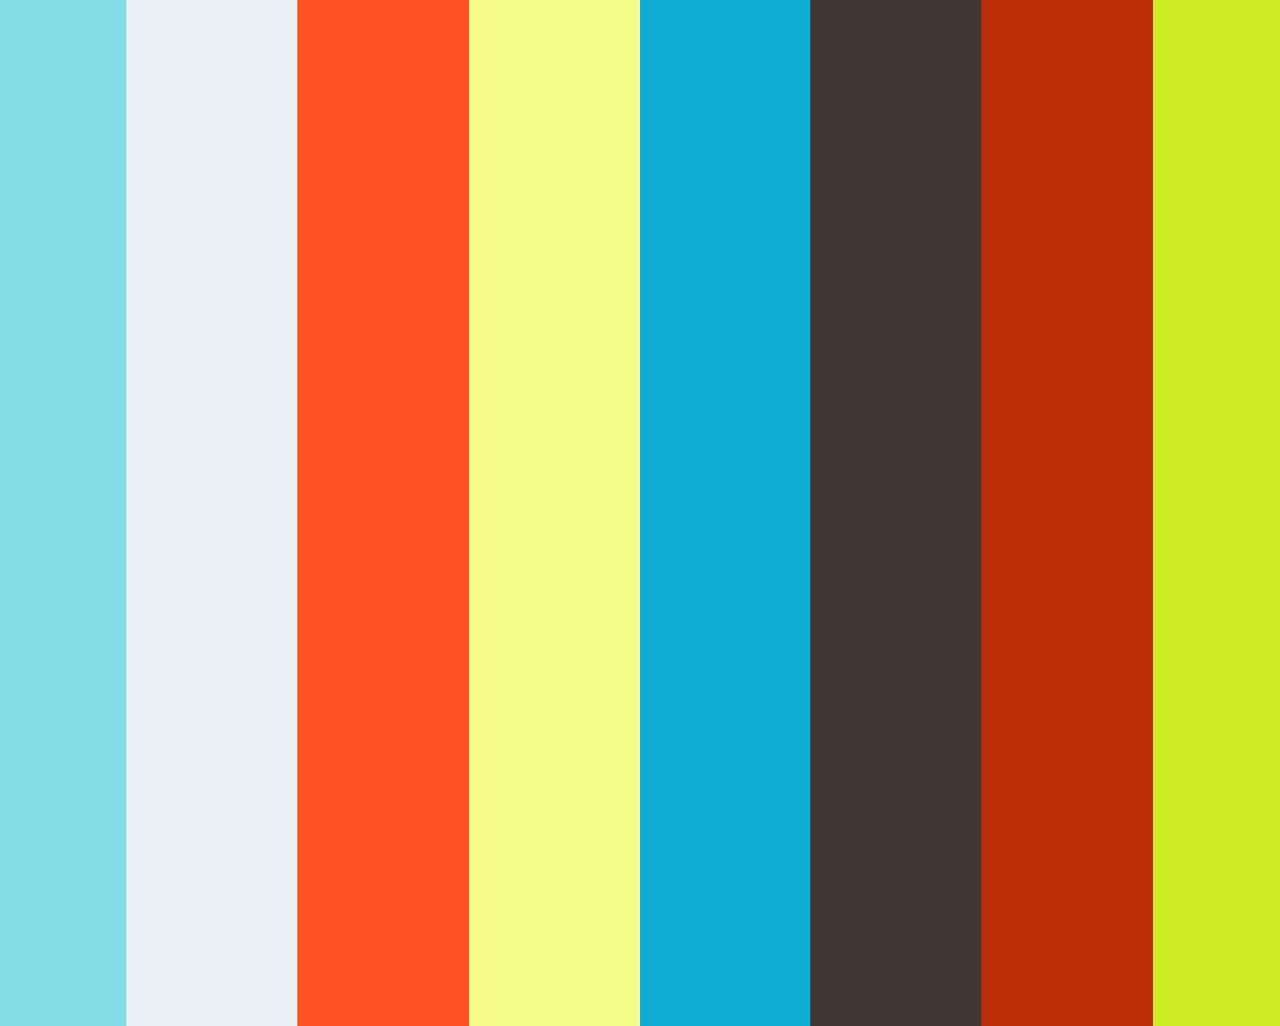 The Manchester Metropolitan University Centre For Enterprise